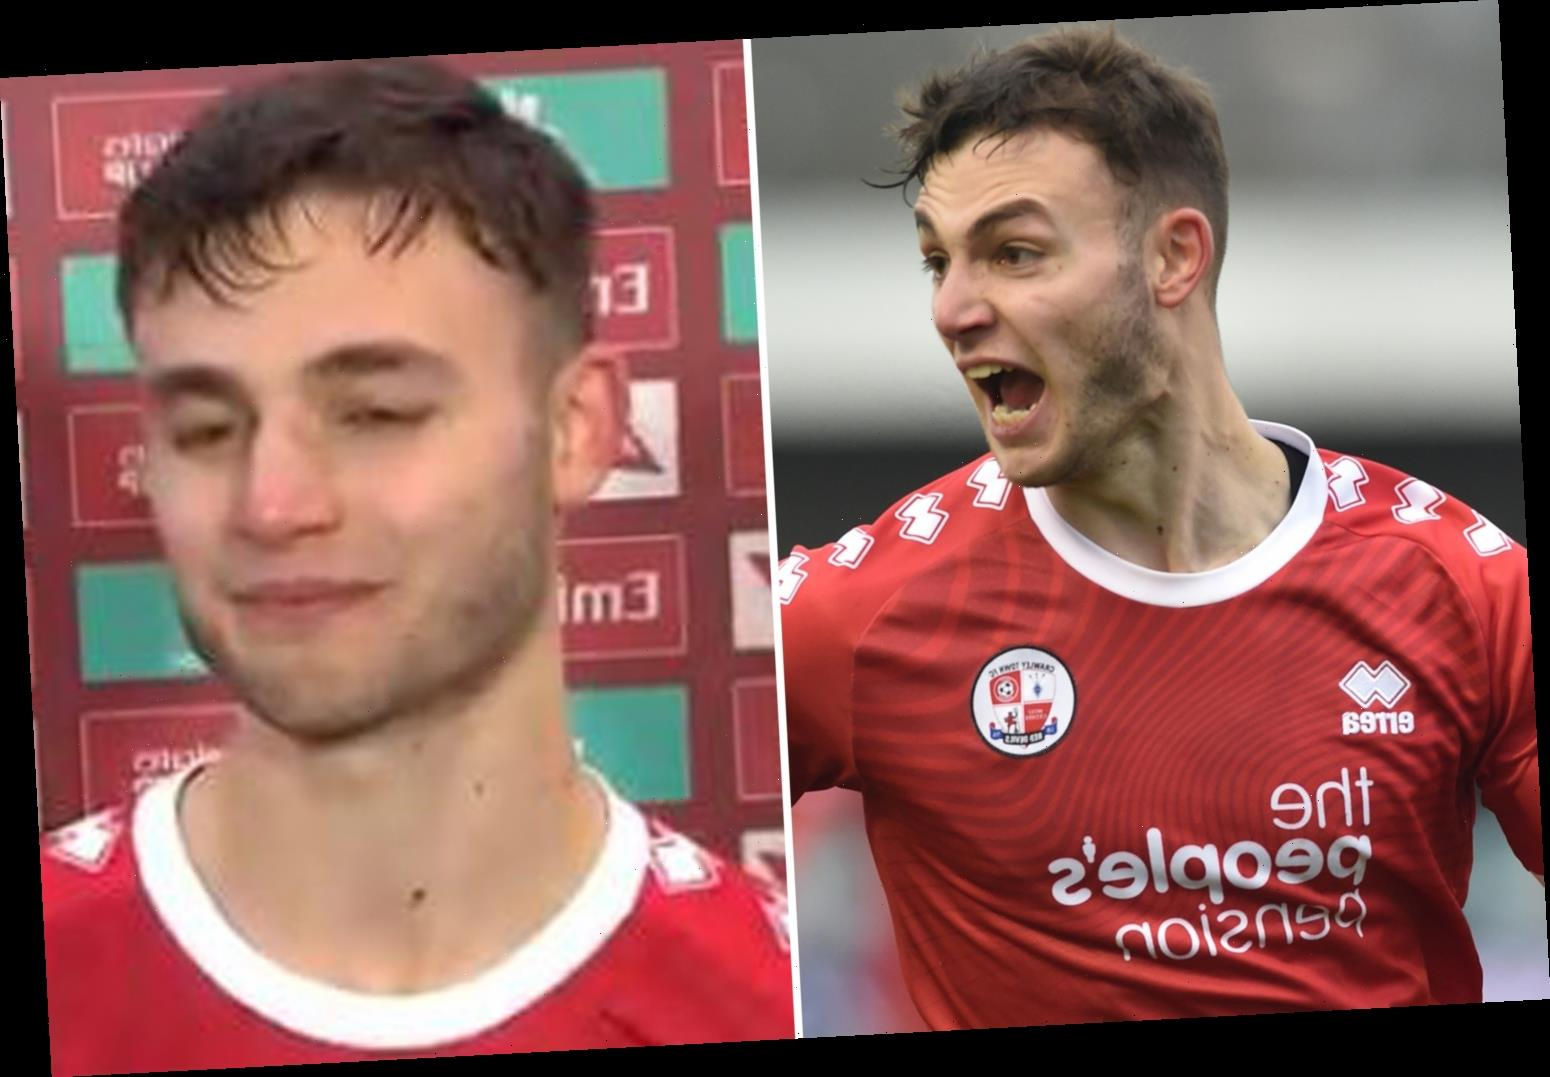 Watch Crawley hero Tsaroulla break down in interview as he celebrates knocking Leeds out of Cup after car crash hell